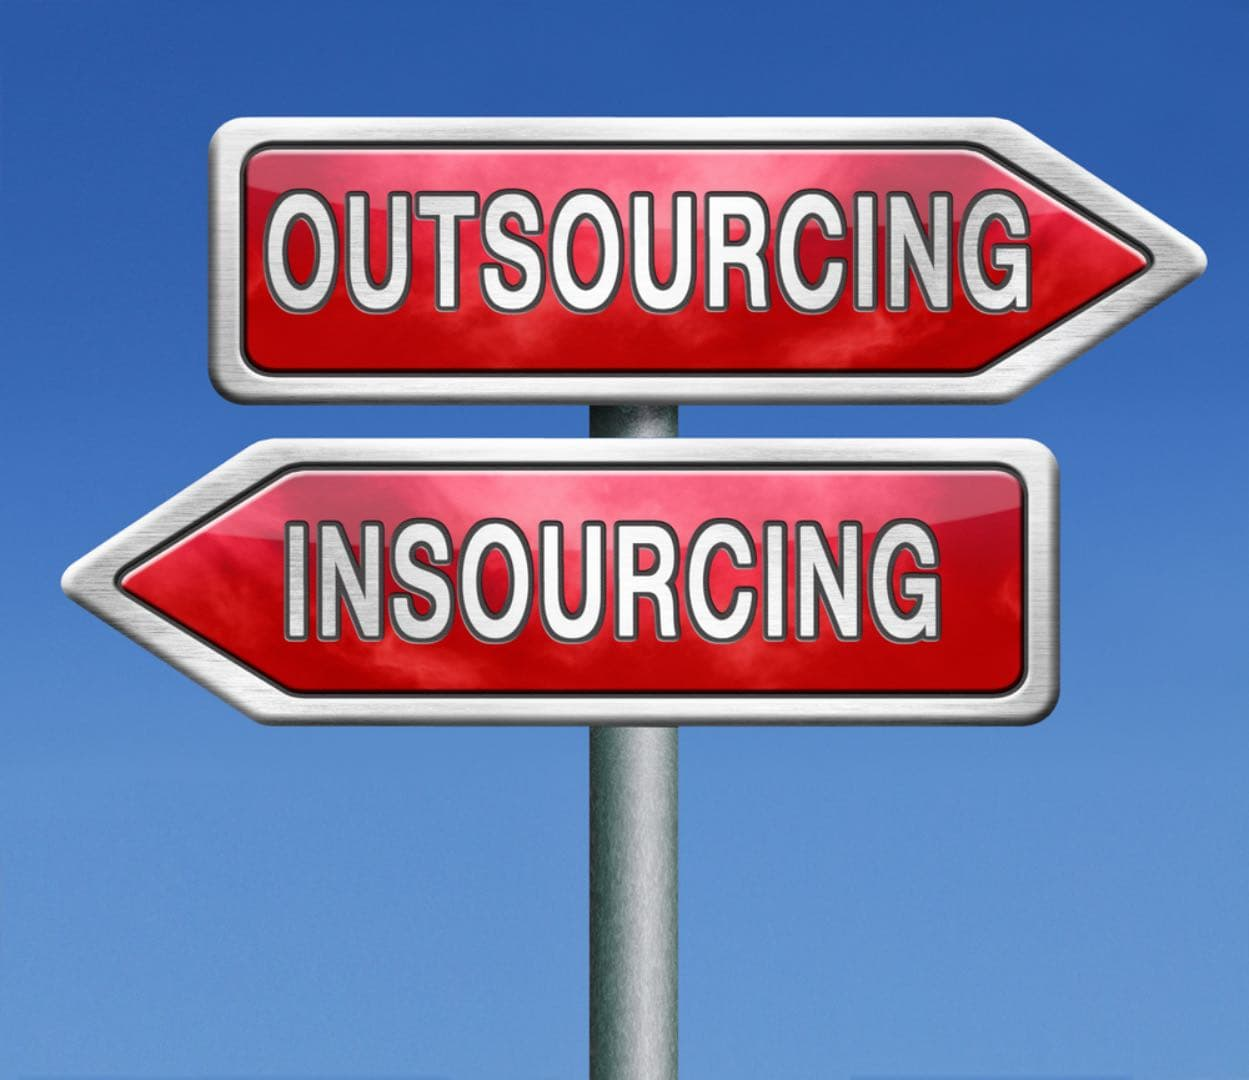 Insourcing vs Outsourcing: What's Best for My Digital Marketing